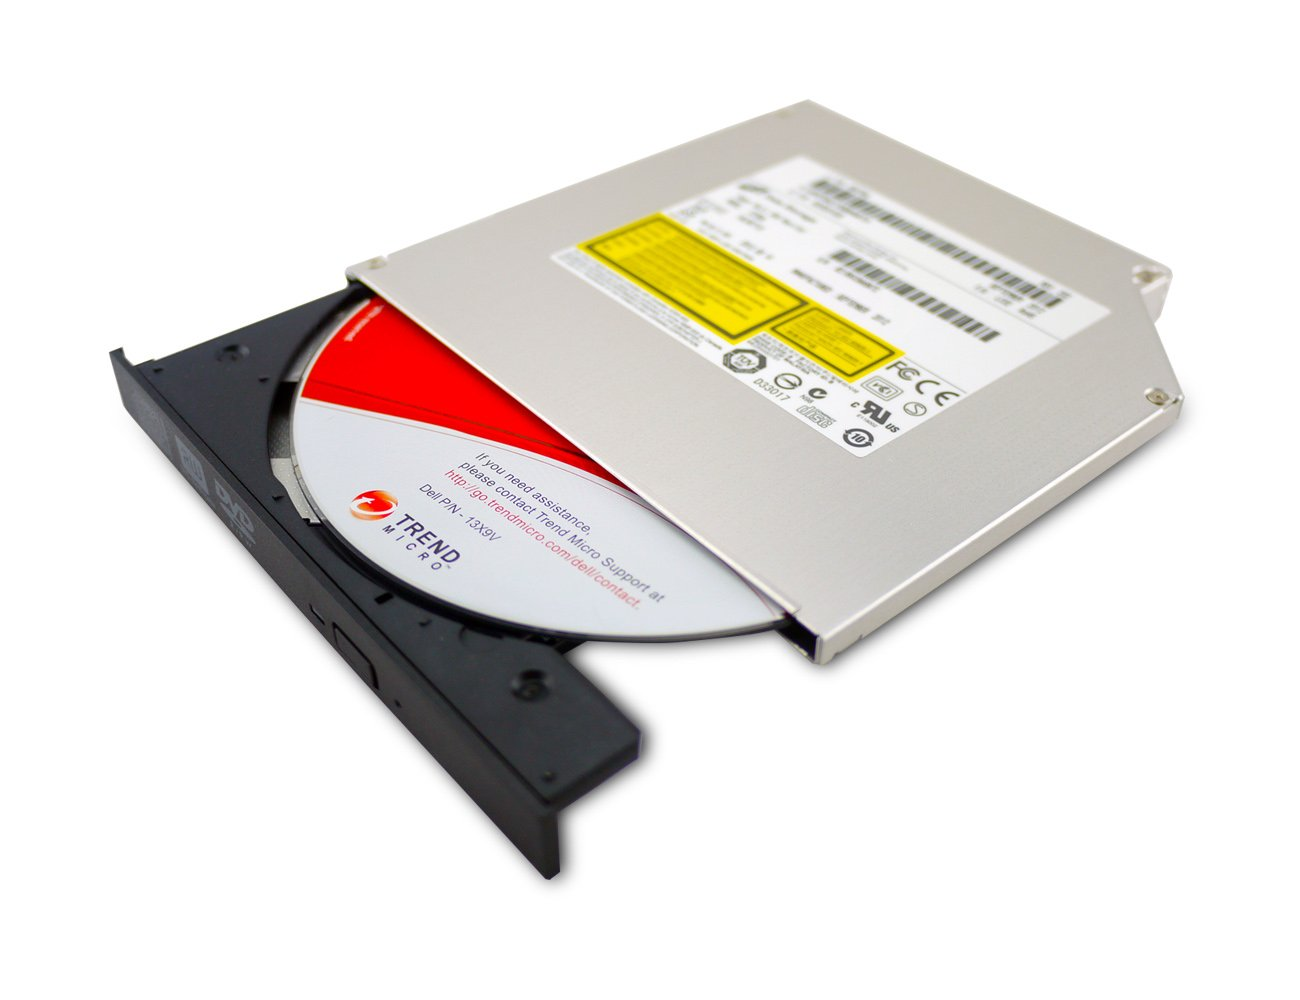 HIGHDING SATA CD DVD-ROM/RAM DVD-RW Drive Writer Burner for Sony VAIO VGN-NS110E/W VGN-NS130E VGN-NS235J